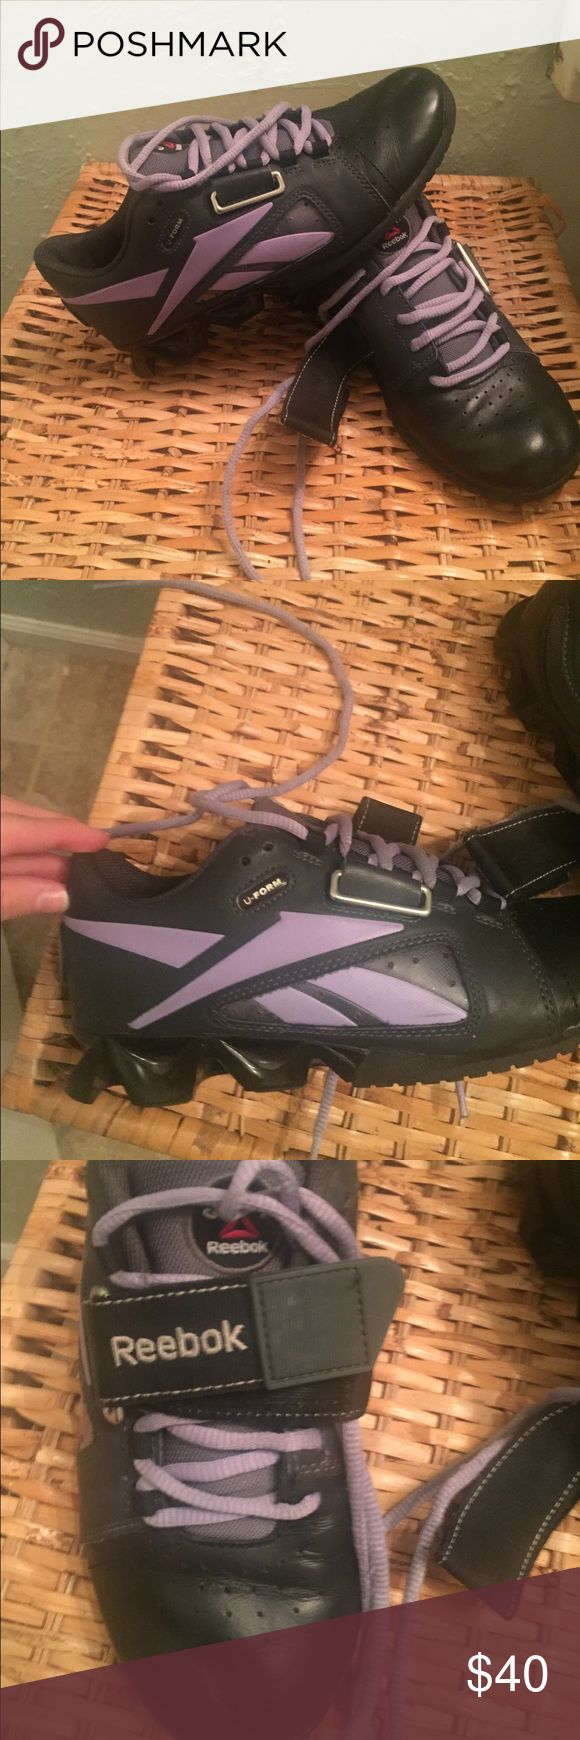 Reebok lifting shoes Reebok lifting shoes size 6.5 black and purple Reebok Shoes Athletic Shoes